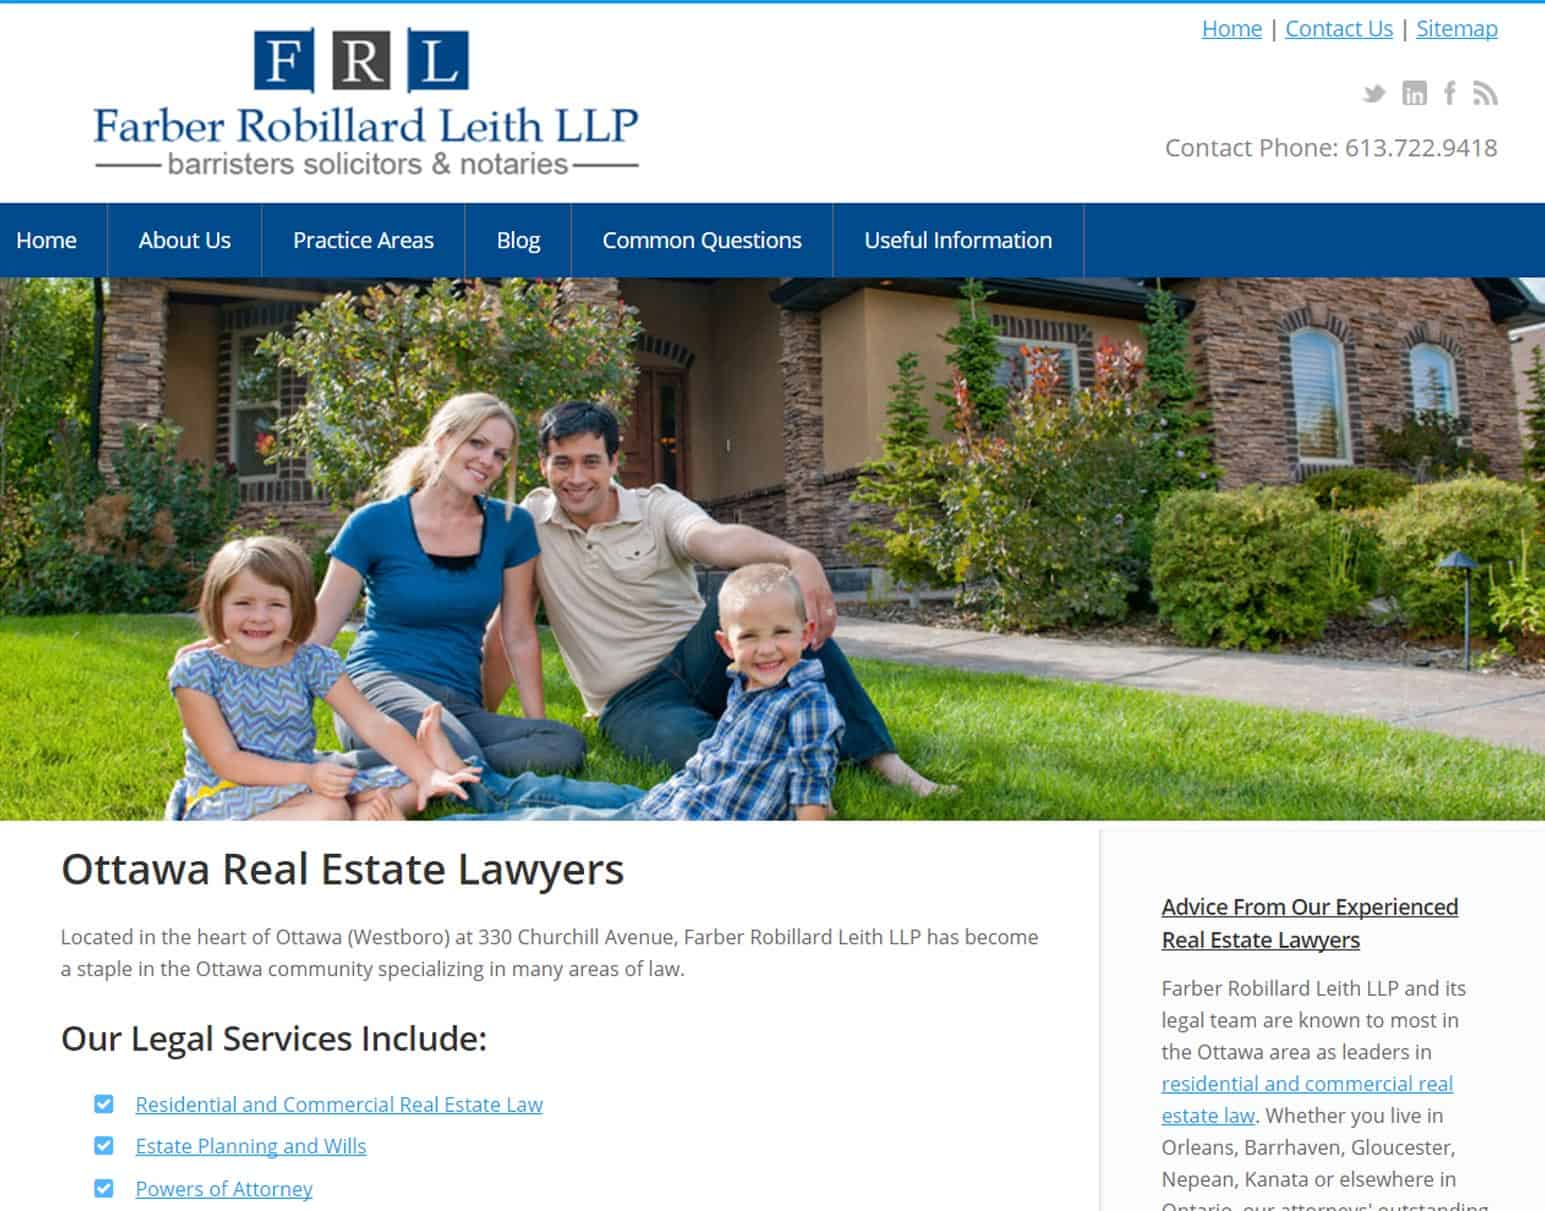 Portfolio Image of Farber Robillard Leith Law Website